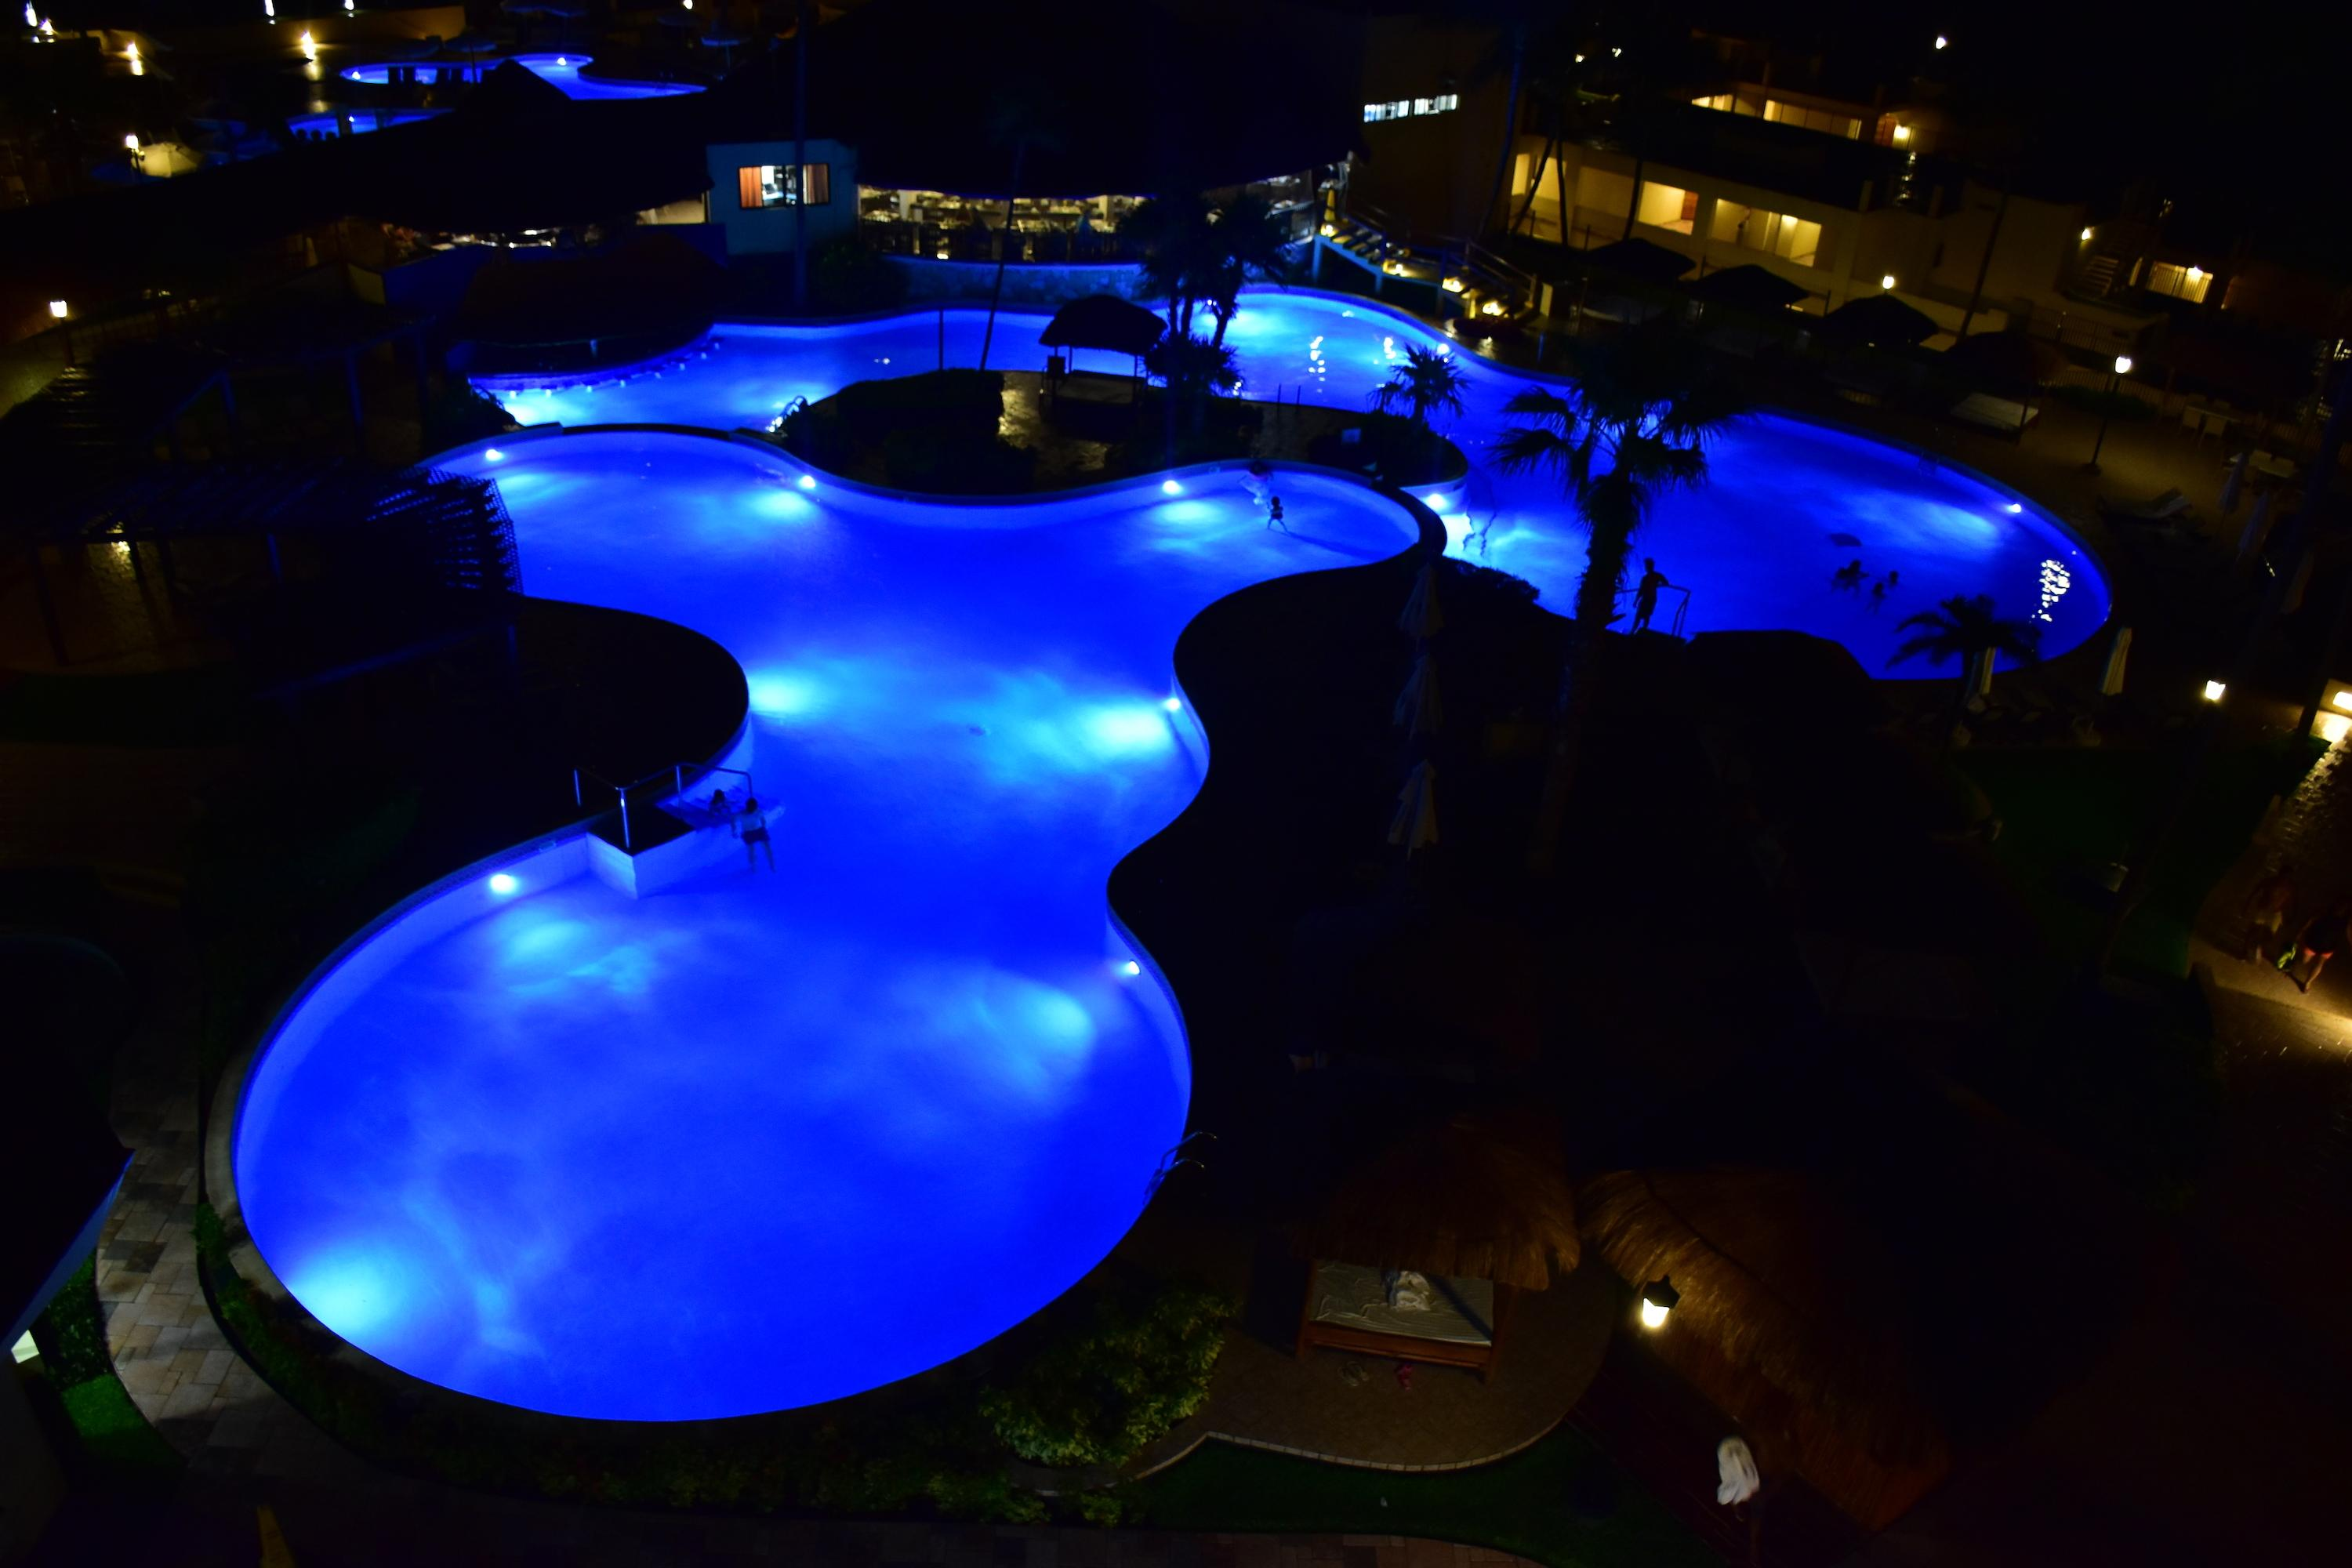 Pool view at night from balcony